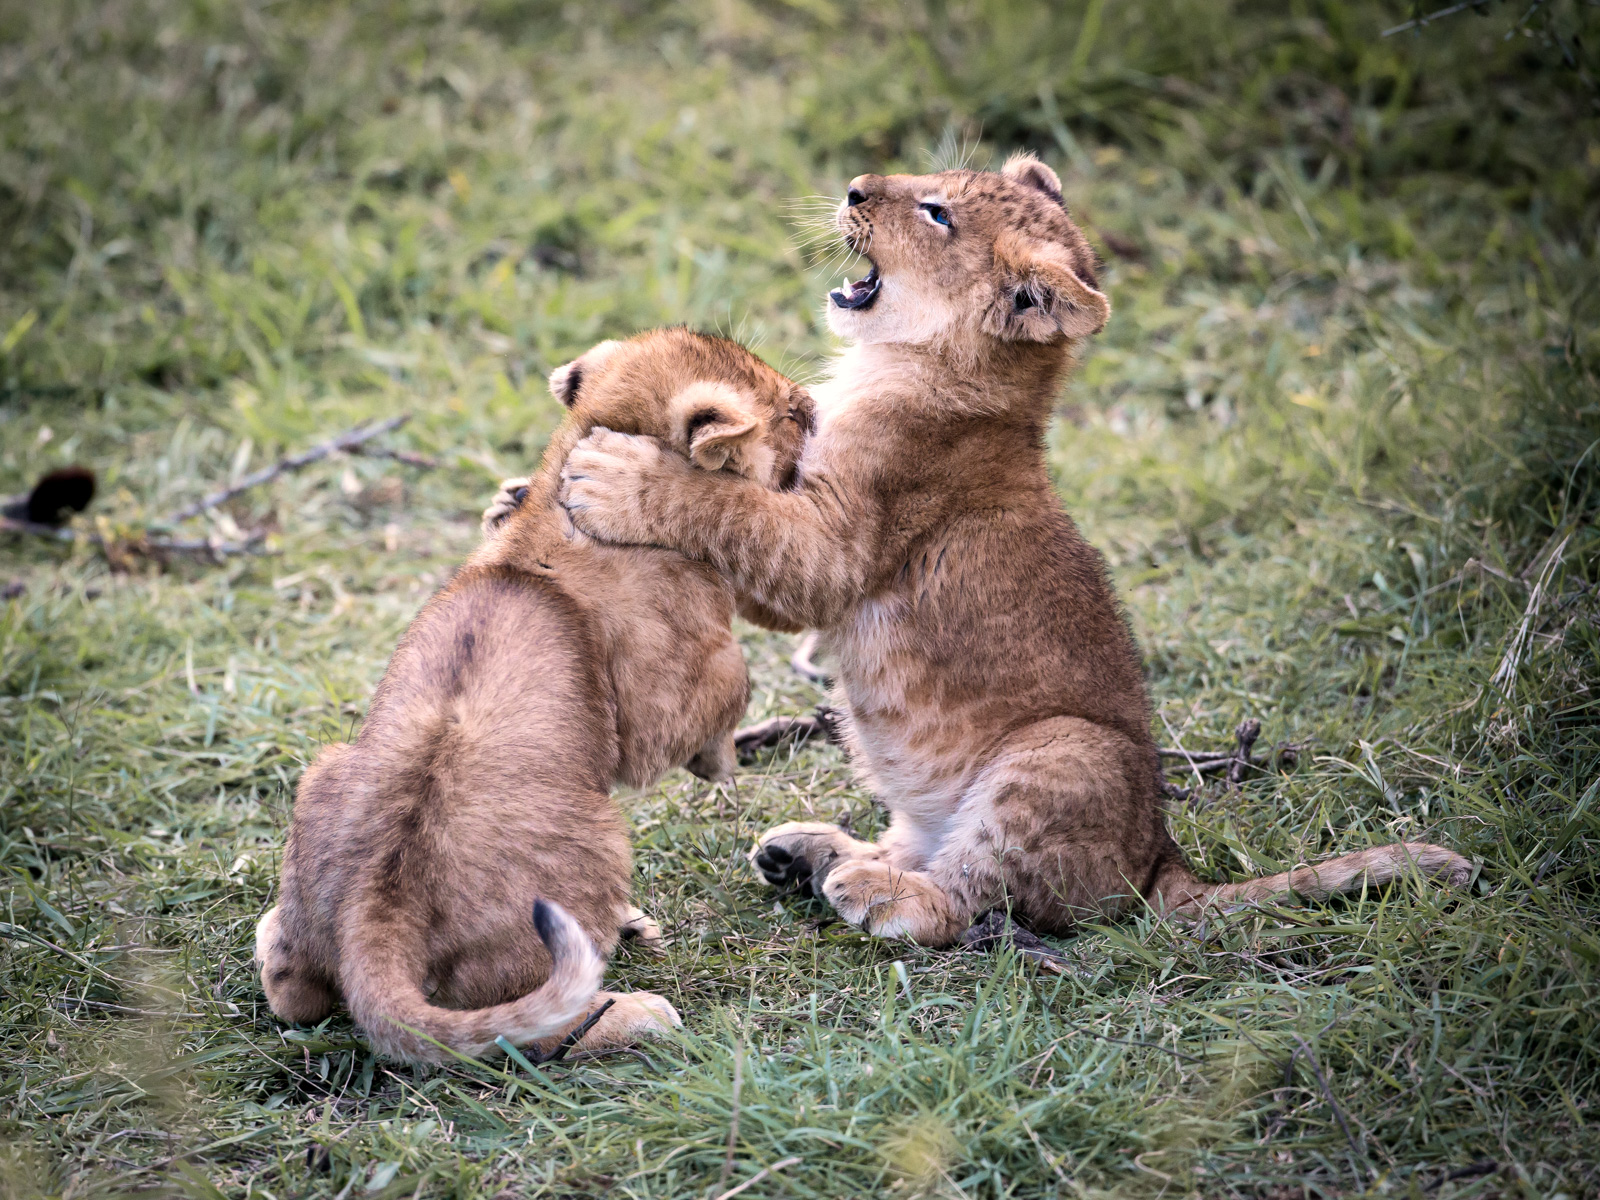 Baby Lions (Kenya): Canon 5D mkiii, 500mm F4 @f5.6, 1/400, ISO2500